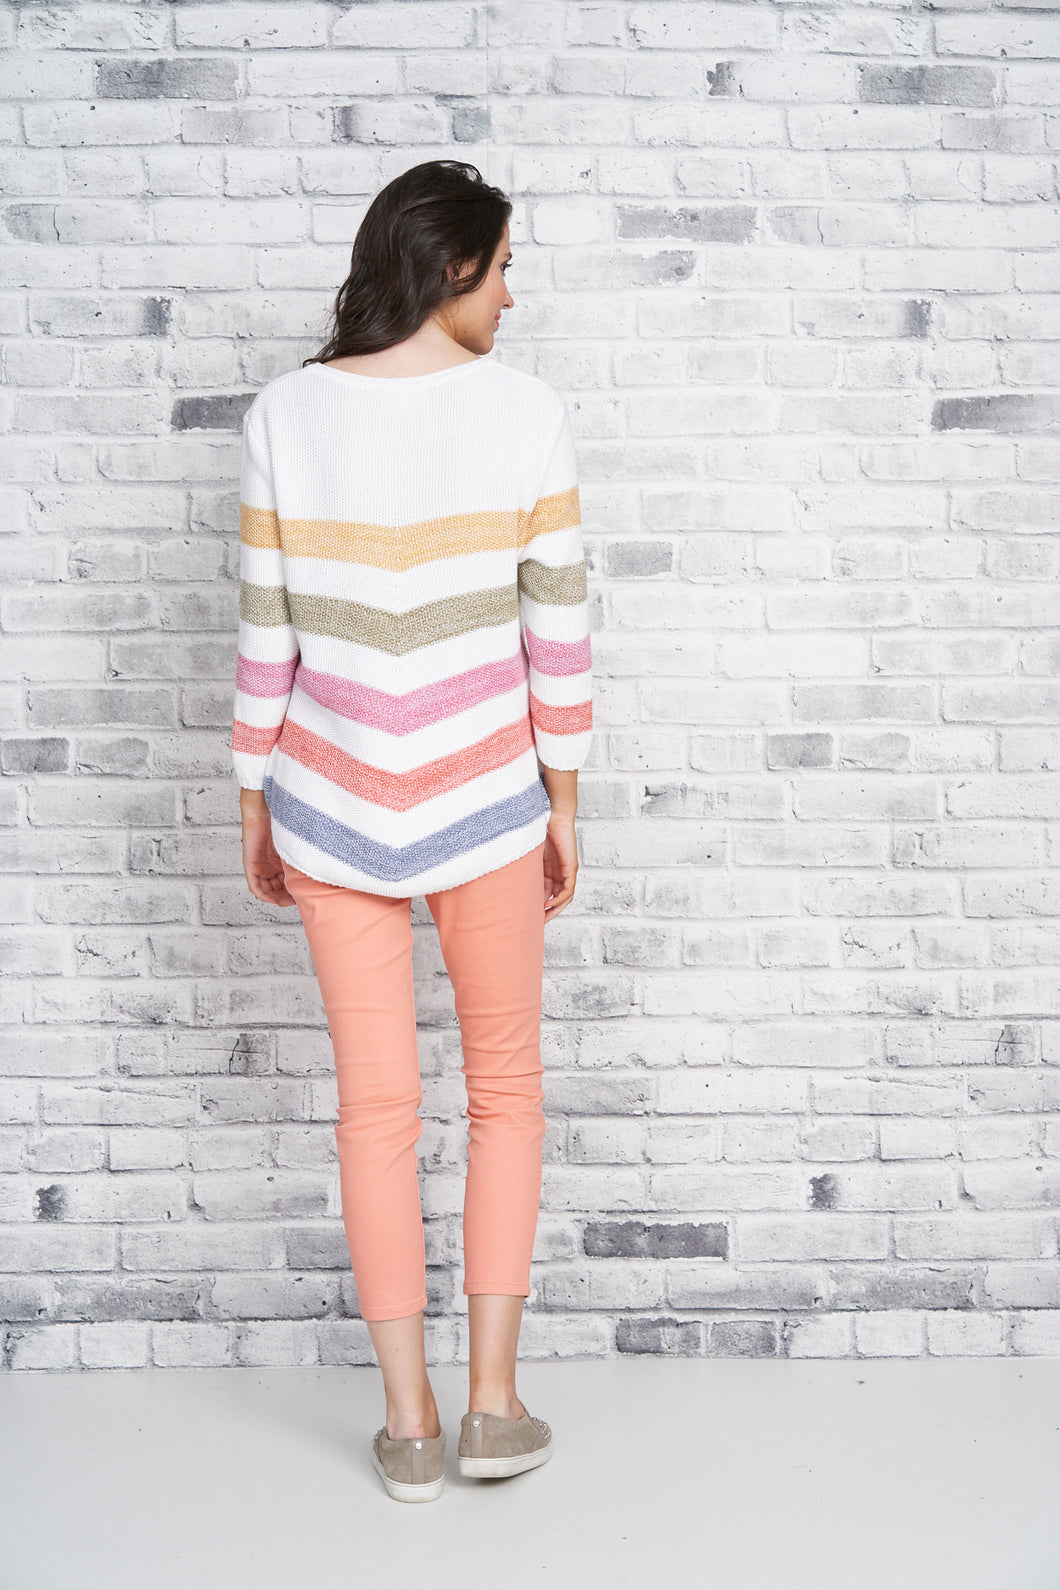 Cotton Country Vivian Striped Crewneck Sweater - Style 87193